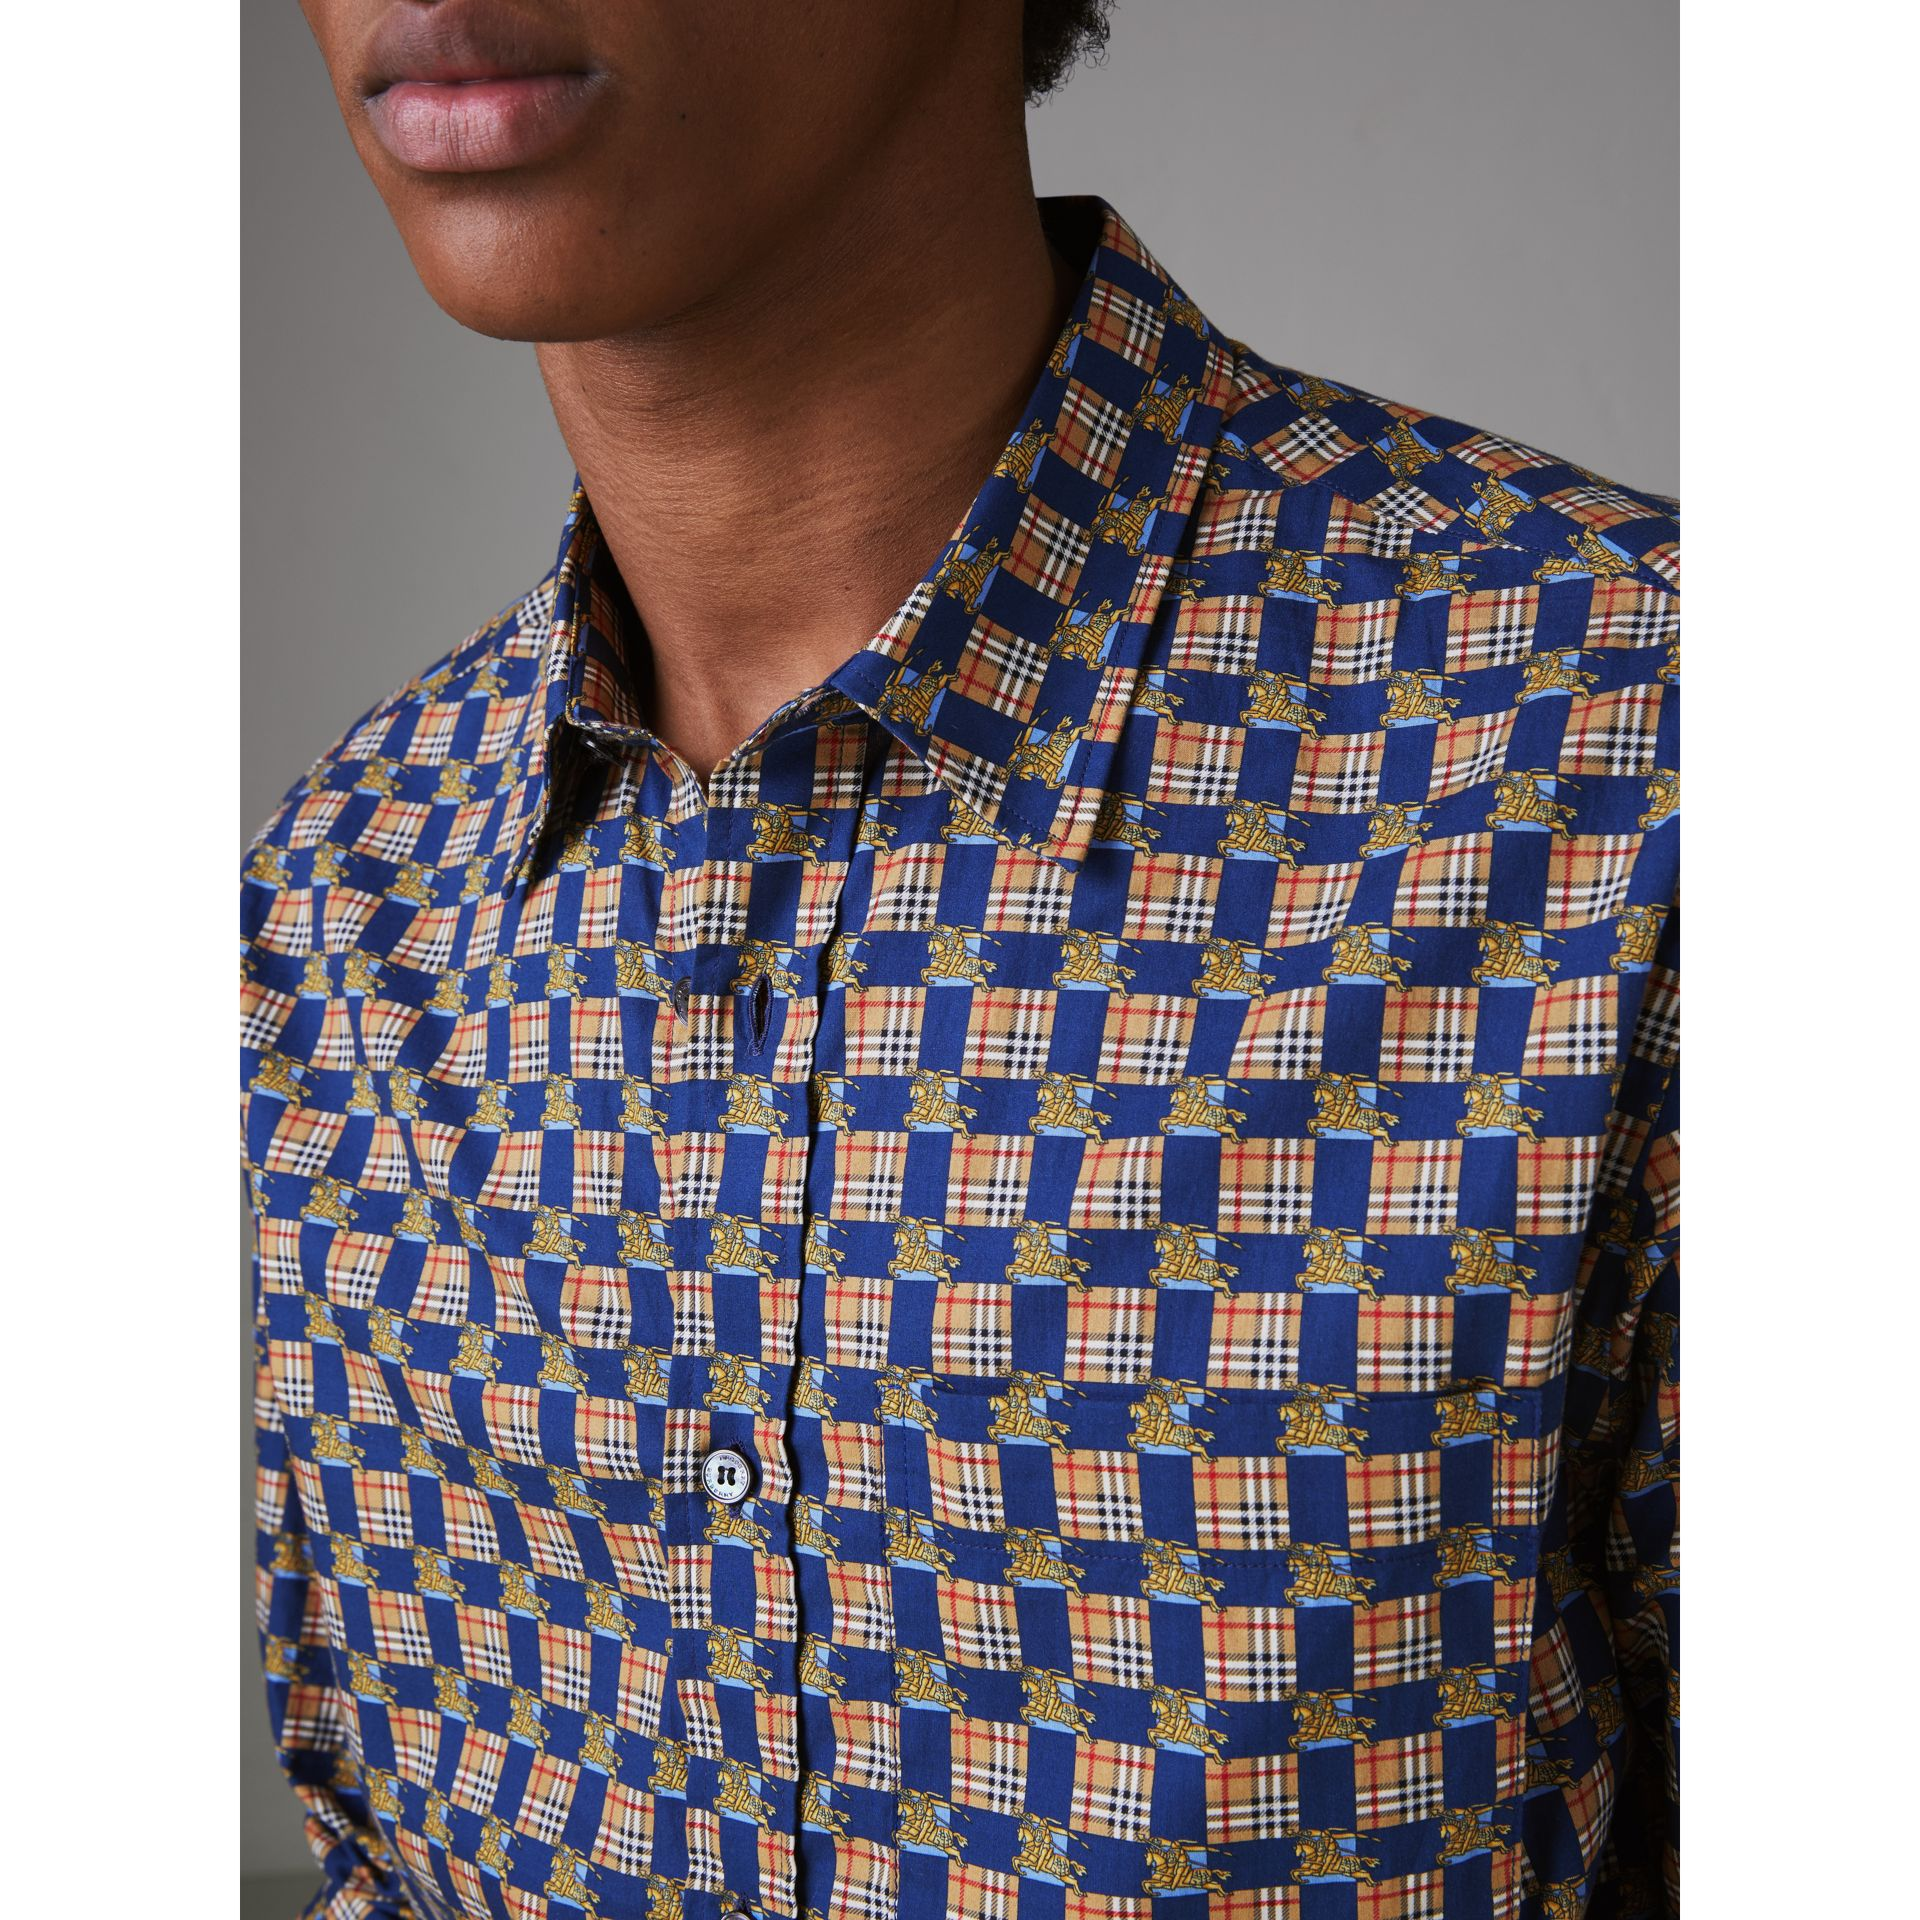 Tiled Archive Print Cotton Shirt in Navy - Men | Burberry United States - gallery image 1